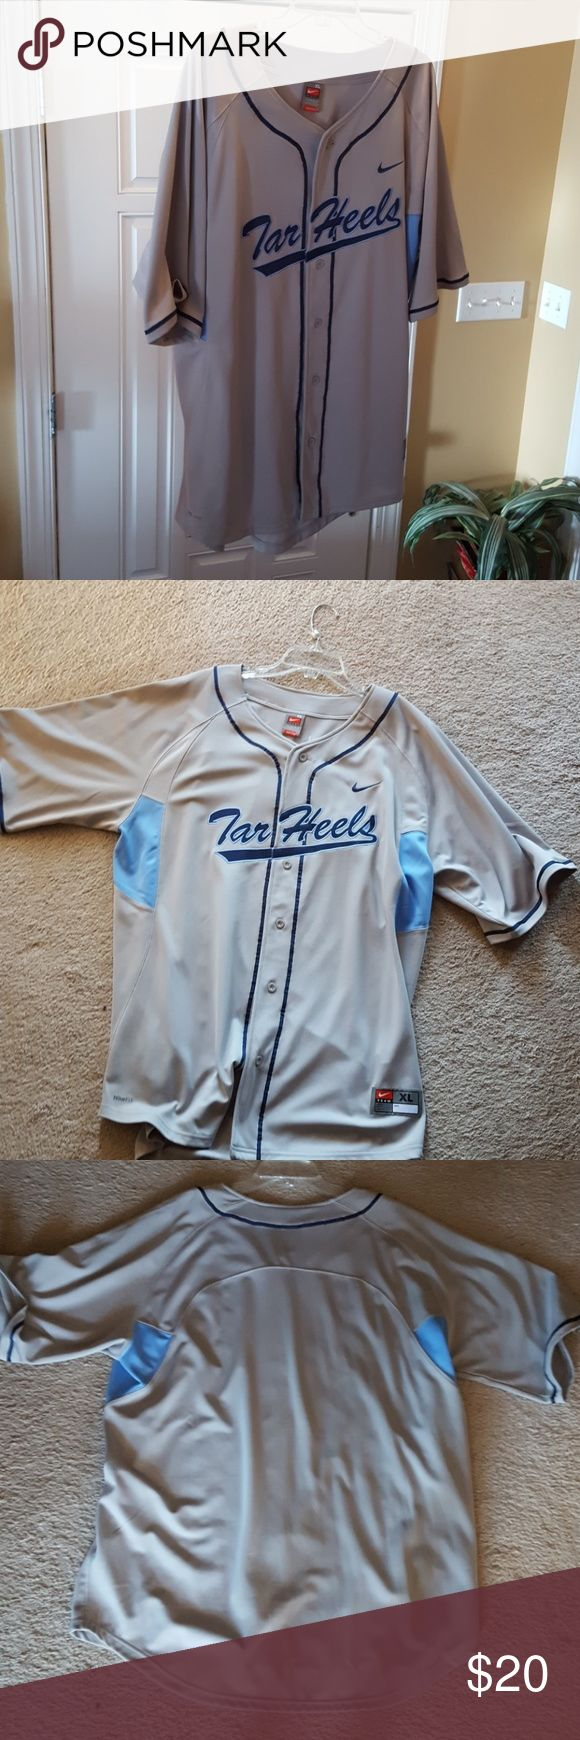 Men's Nike Fit-Dry Tar Heels Baseball Jersey Button down shirt. Great for Tar Heel fans! The jersey runs a little big.  It has been well cared for.  It comes from a smoke free and pet free home. Nike Shirts